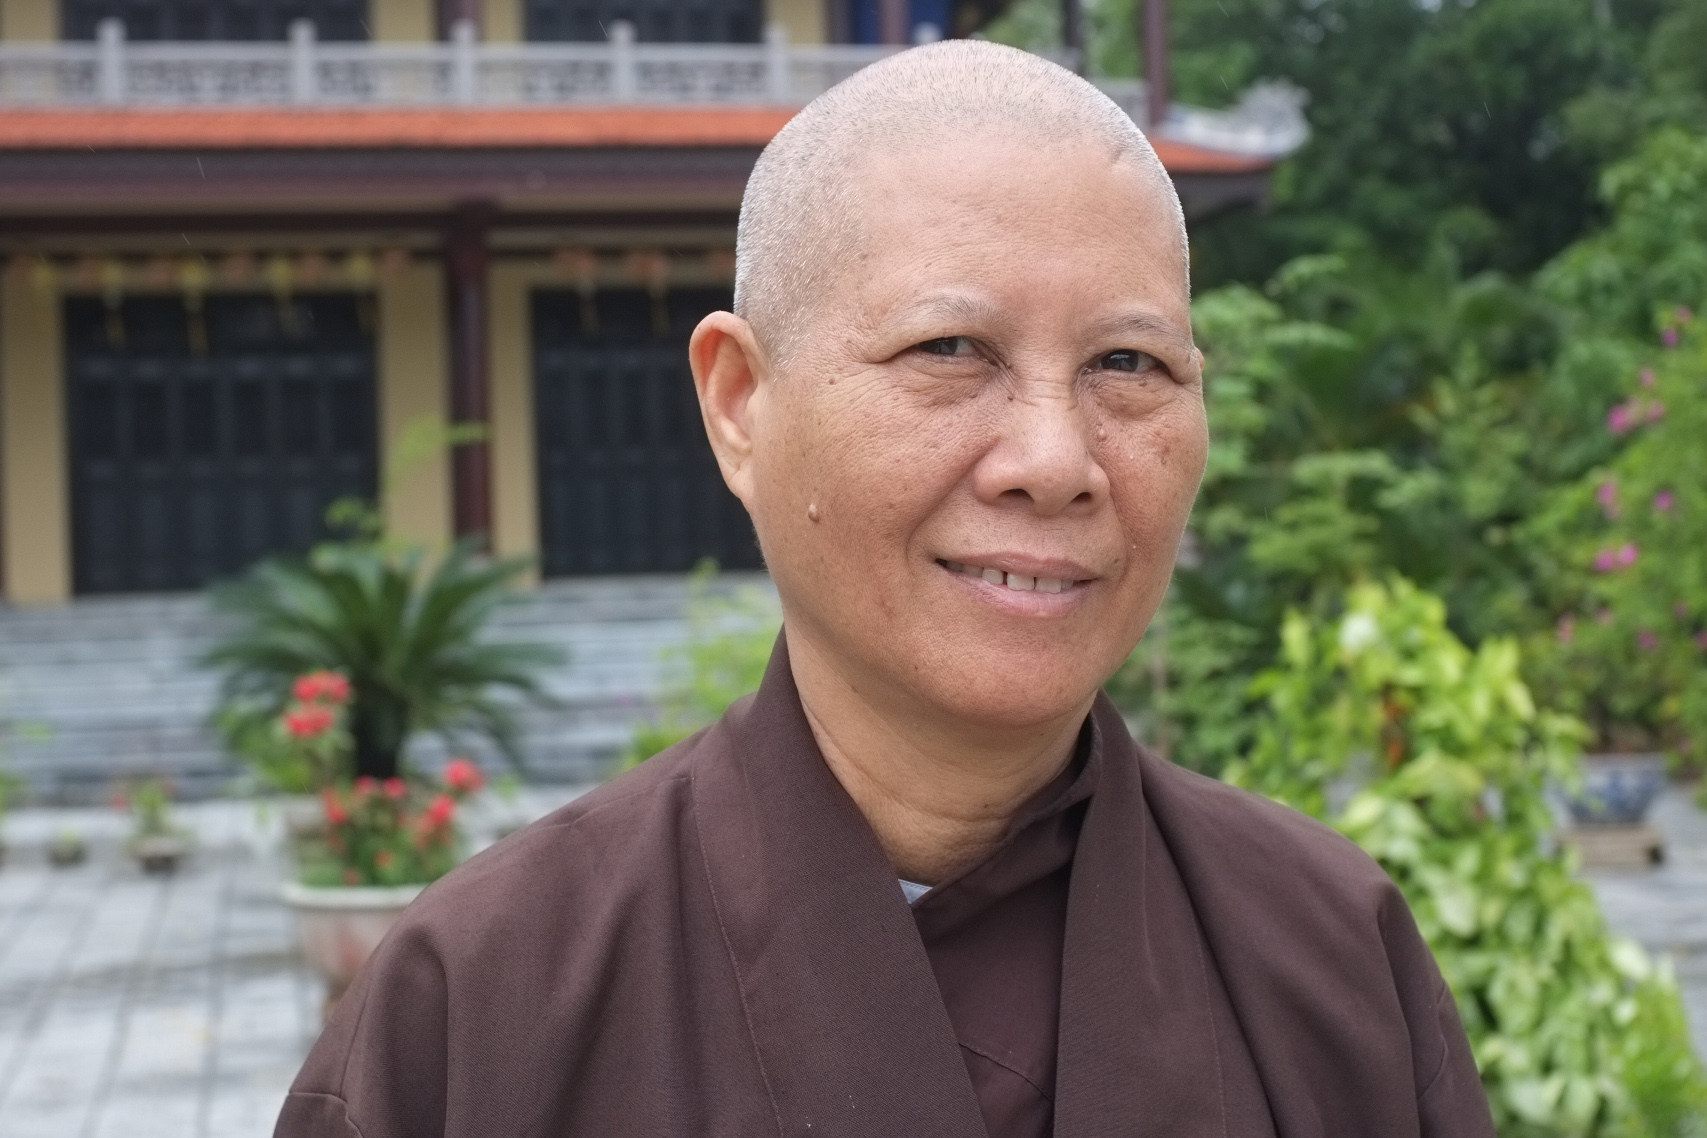 Buddhist nun, Sister True Compassion, outside Tay Linh temple in Hue, Vietnam. Buddhist temples have played a significant, though understudied, role in disaster response